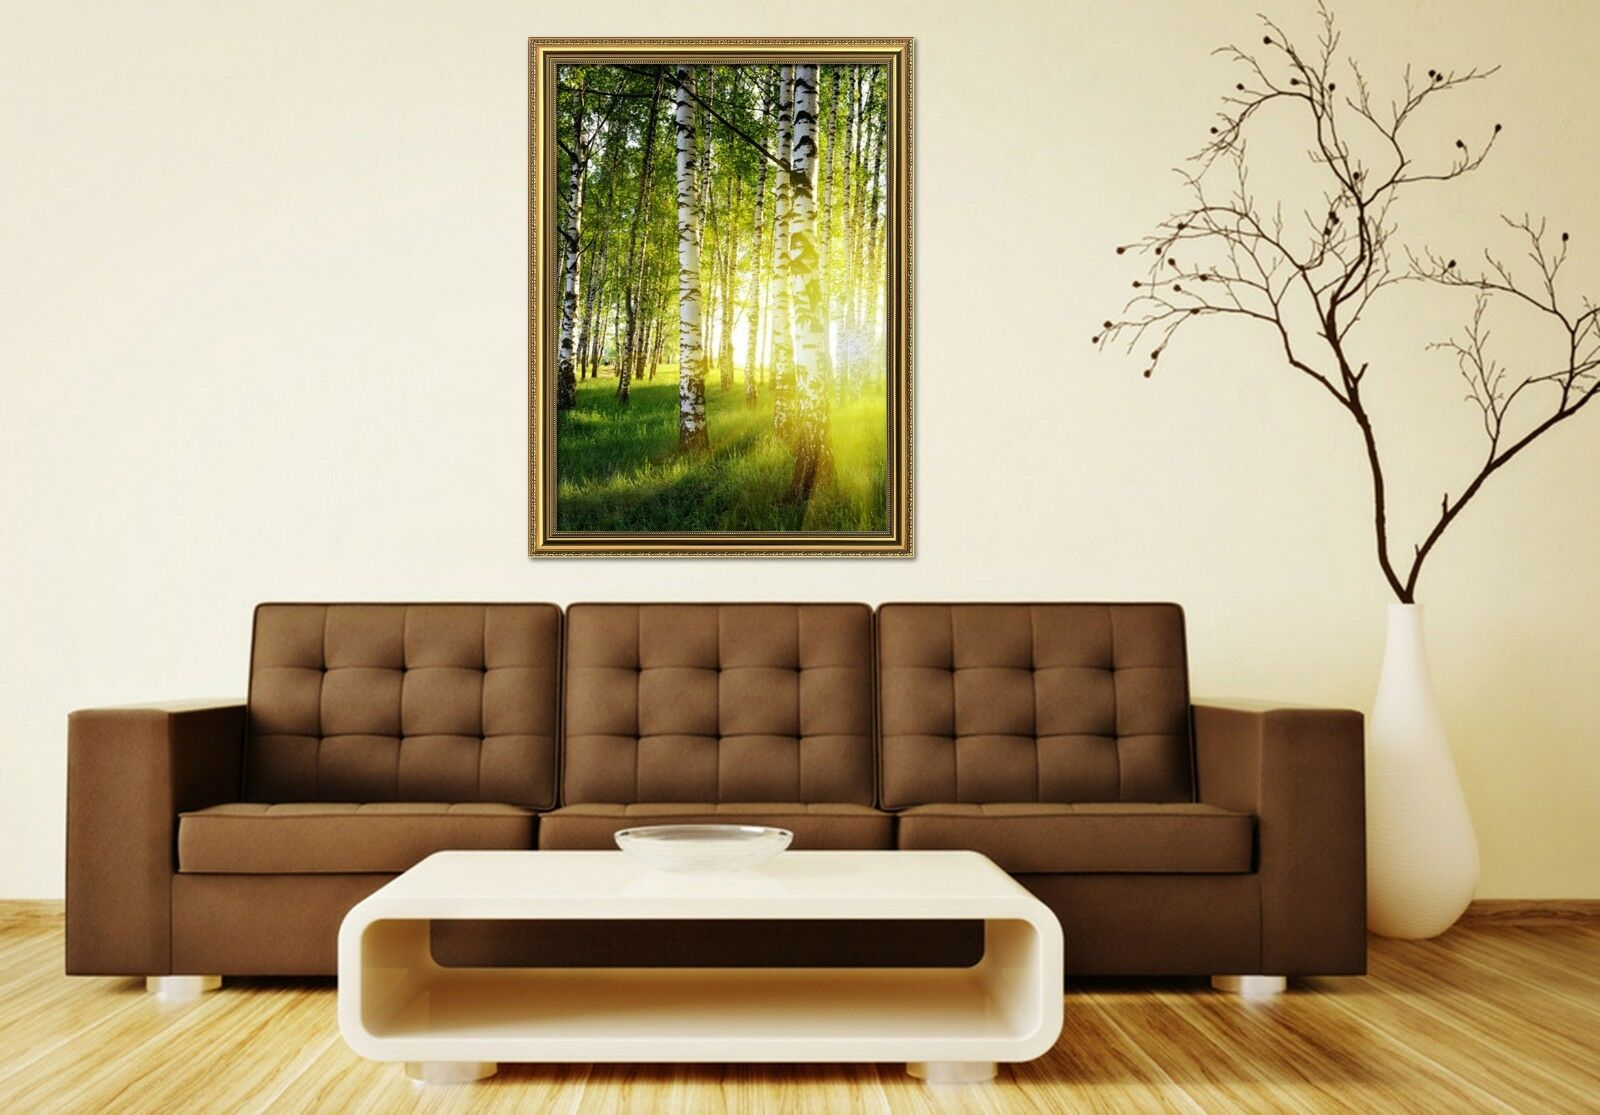 3D Weiß Birch Forest 3 Framed Poster Home Decor Drucken Painting Kunst AJ WandPapier